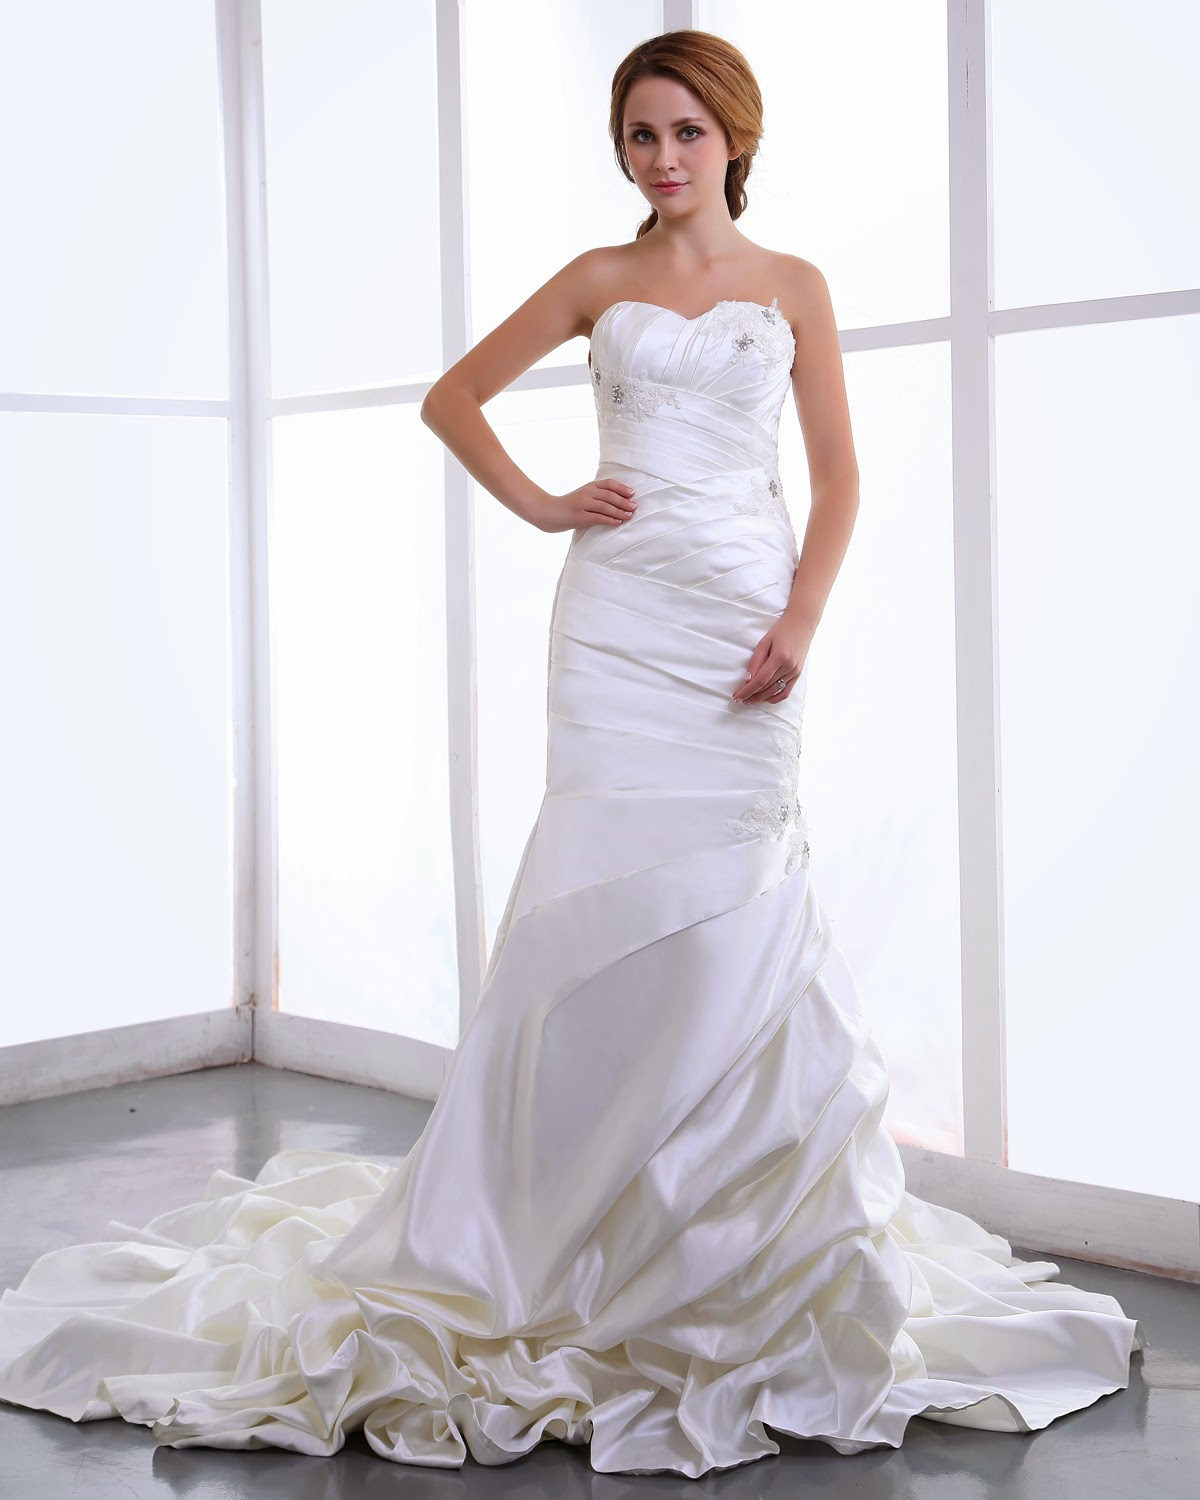 http://www.victoriasdress.co.uk/2014-new-style-trumpet-mermaid-sweetheart-sleeveless-satin-white-wedding-dress-with-ruffles-bukch148.html